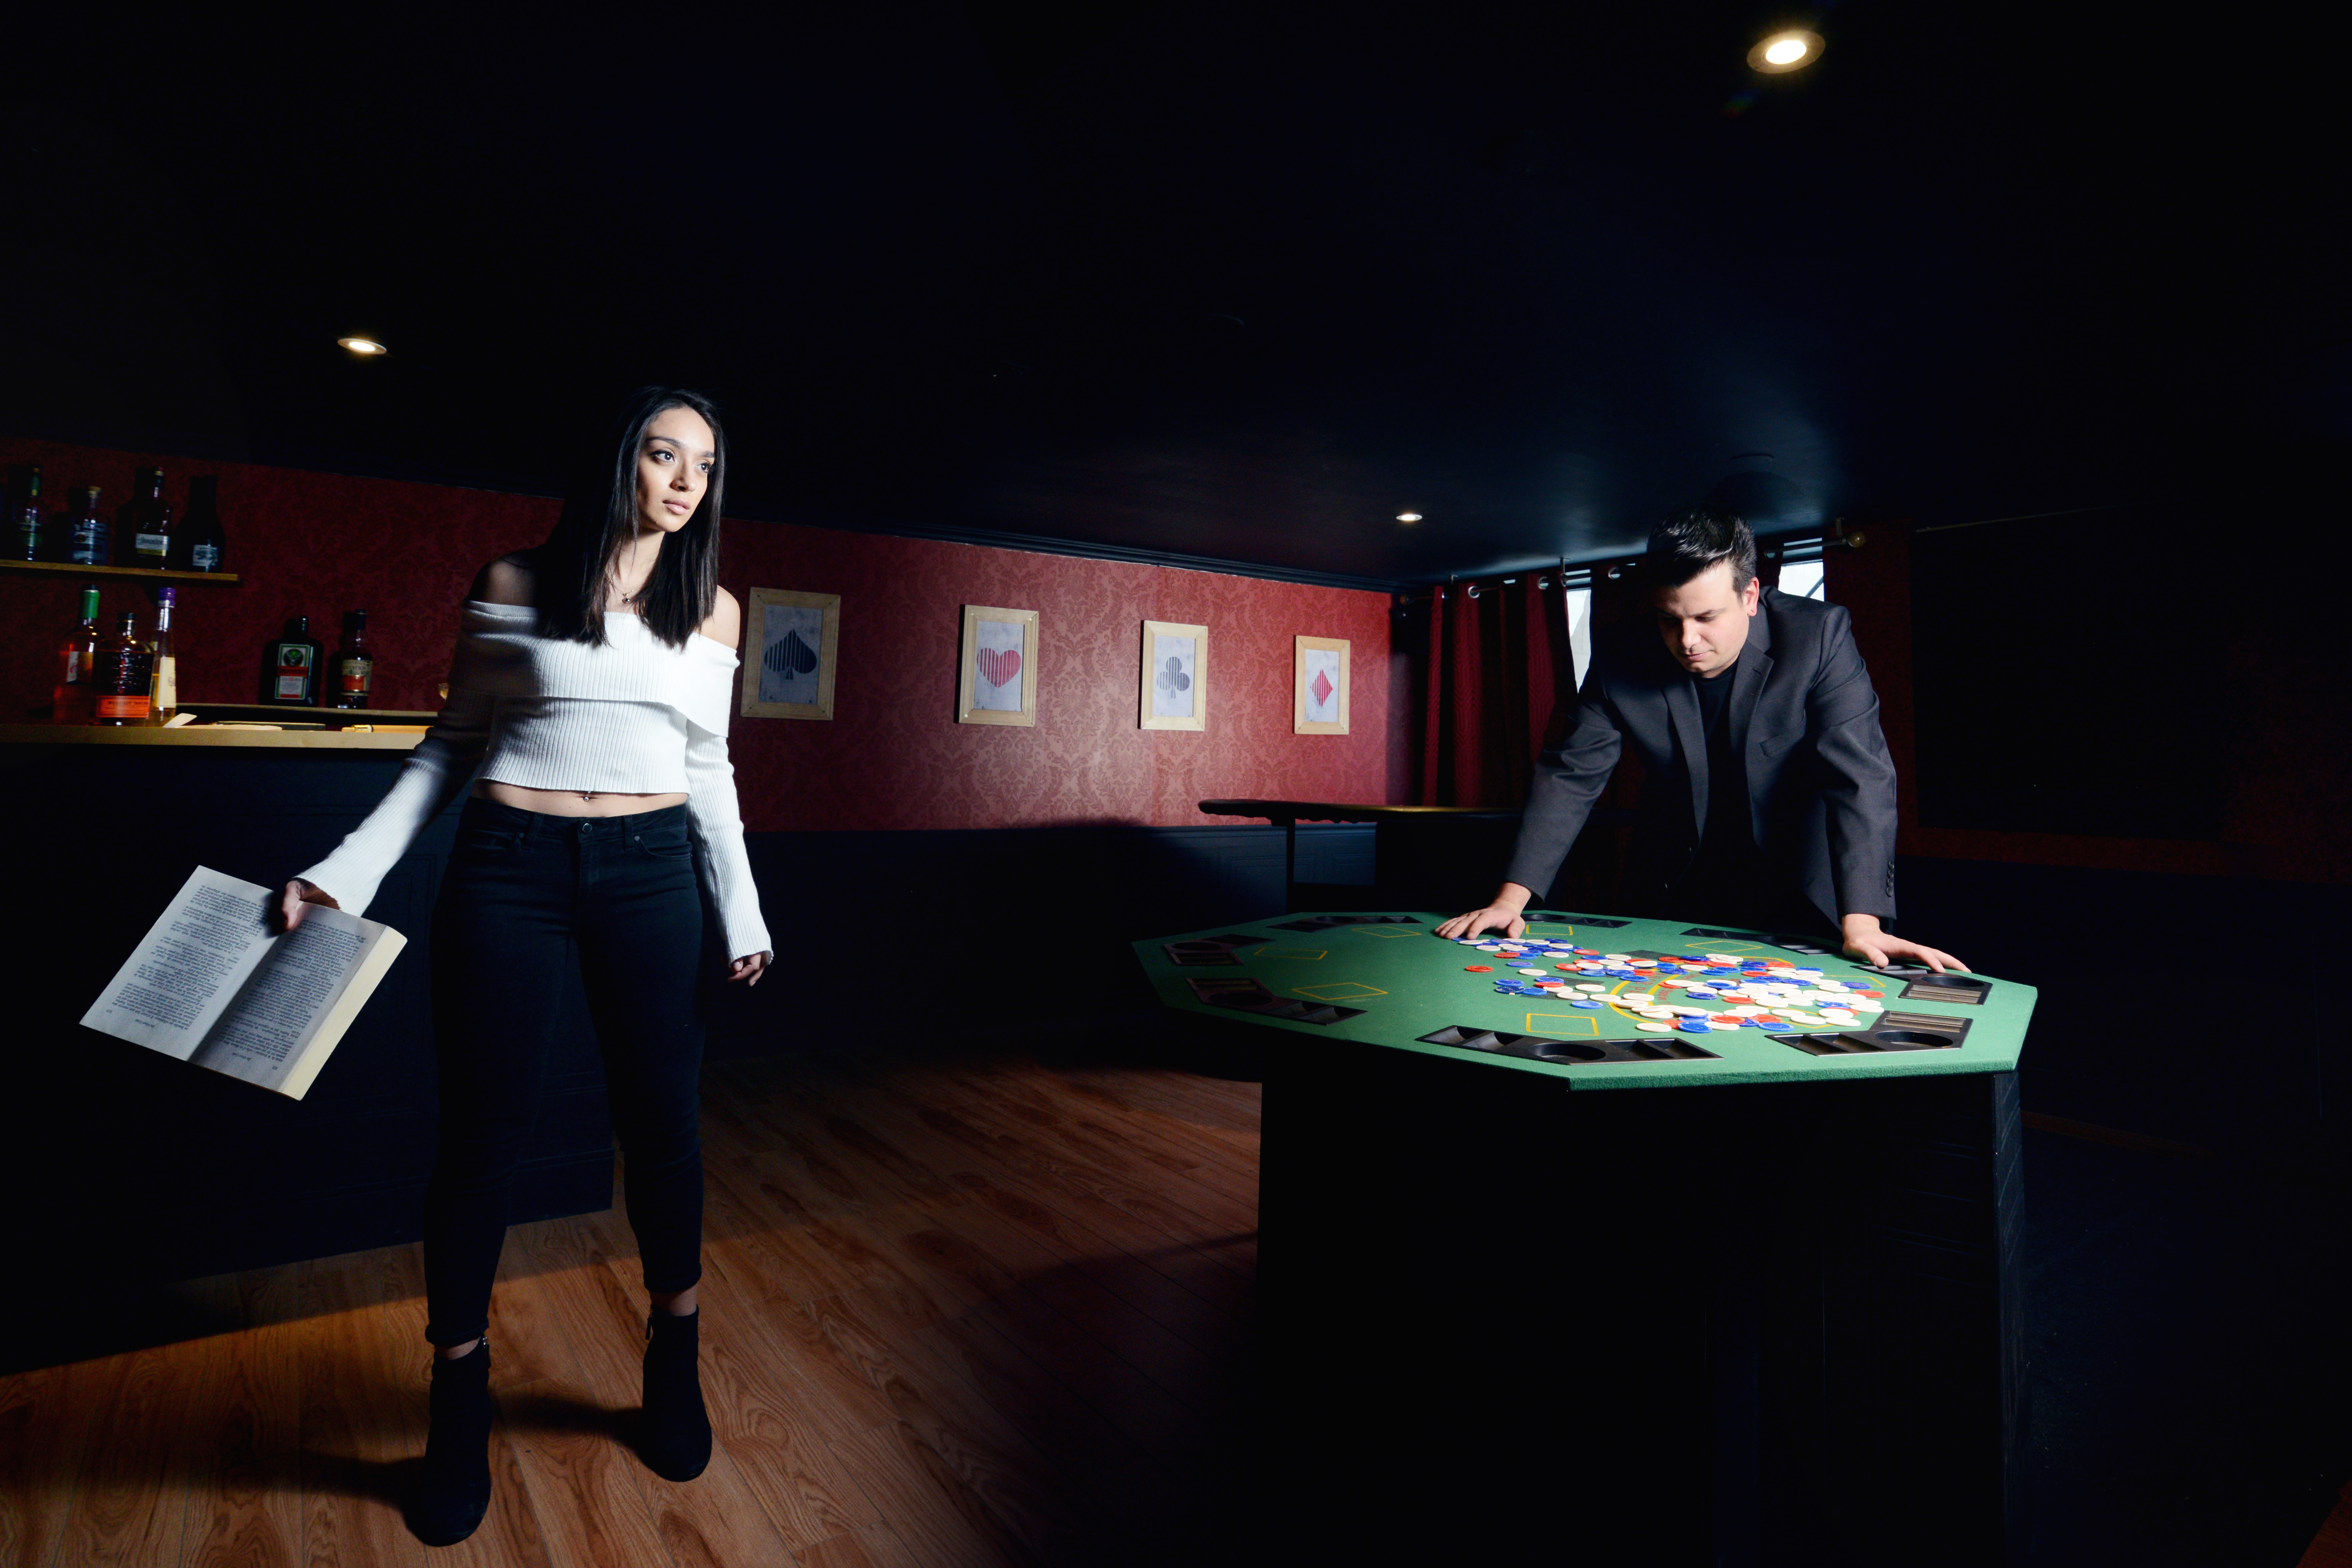 casino-robbery-escape-game-1